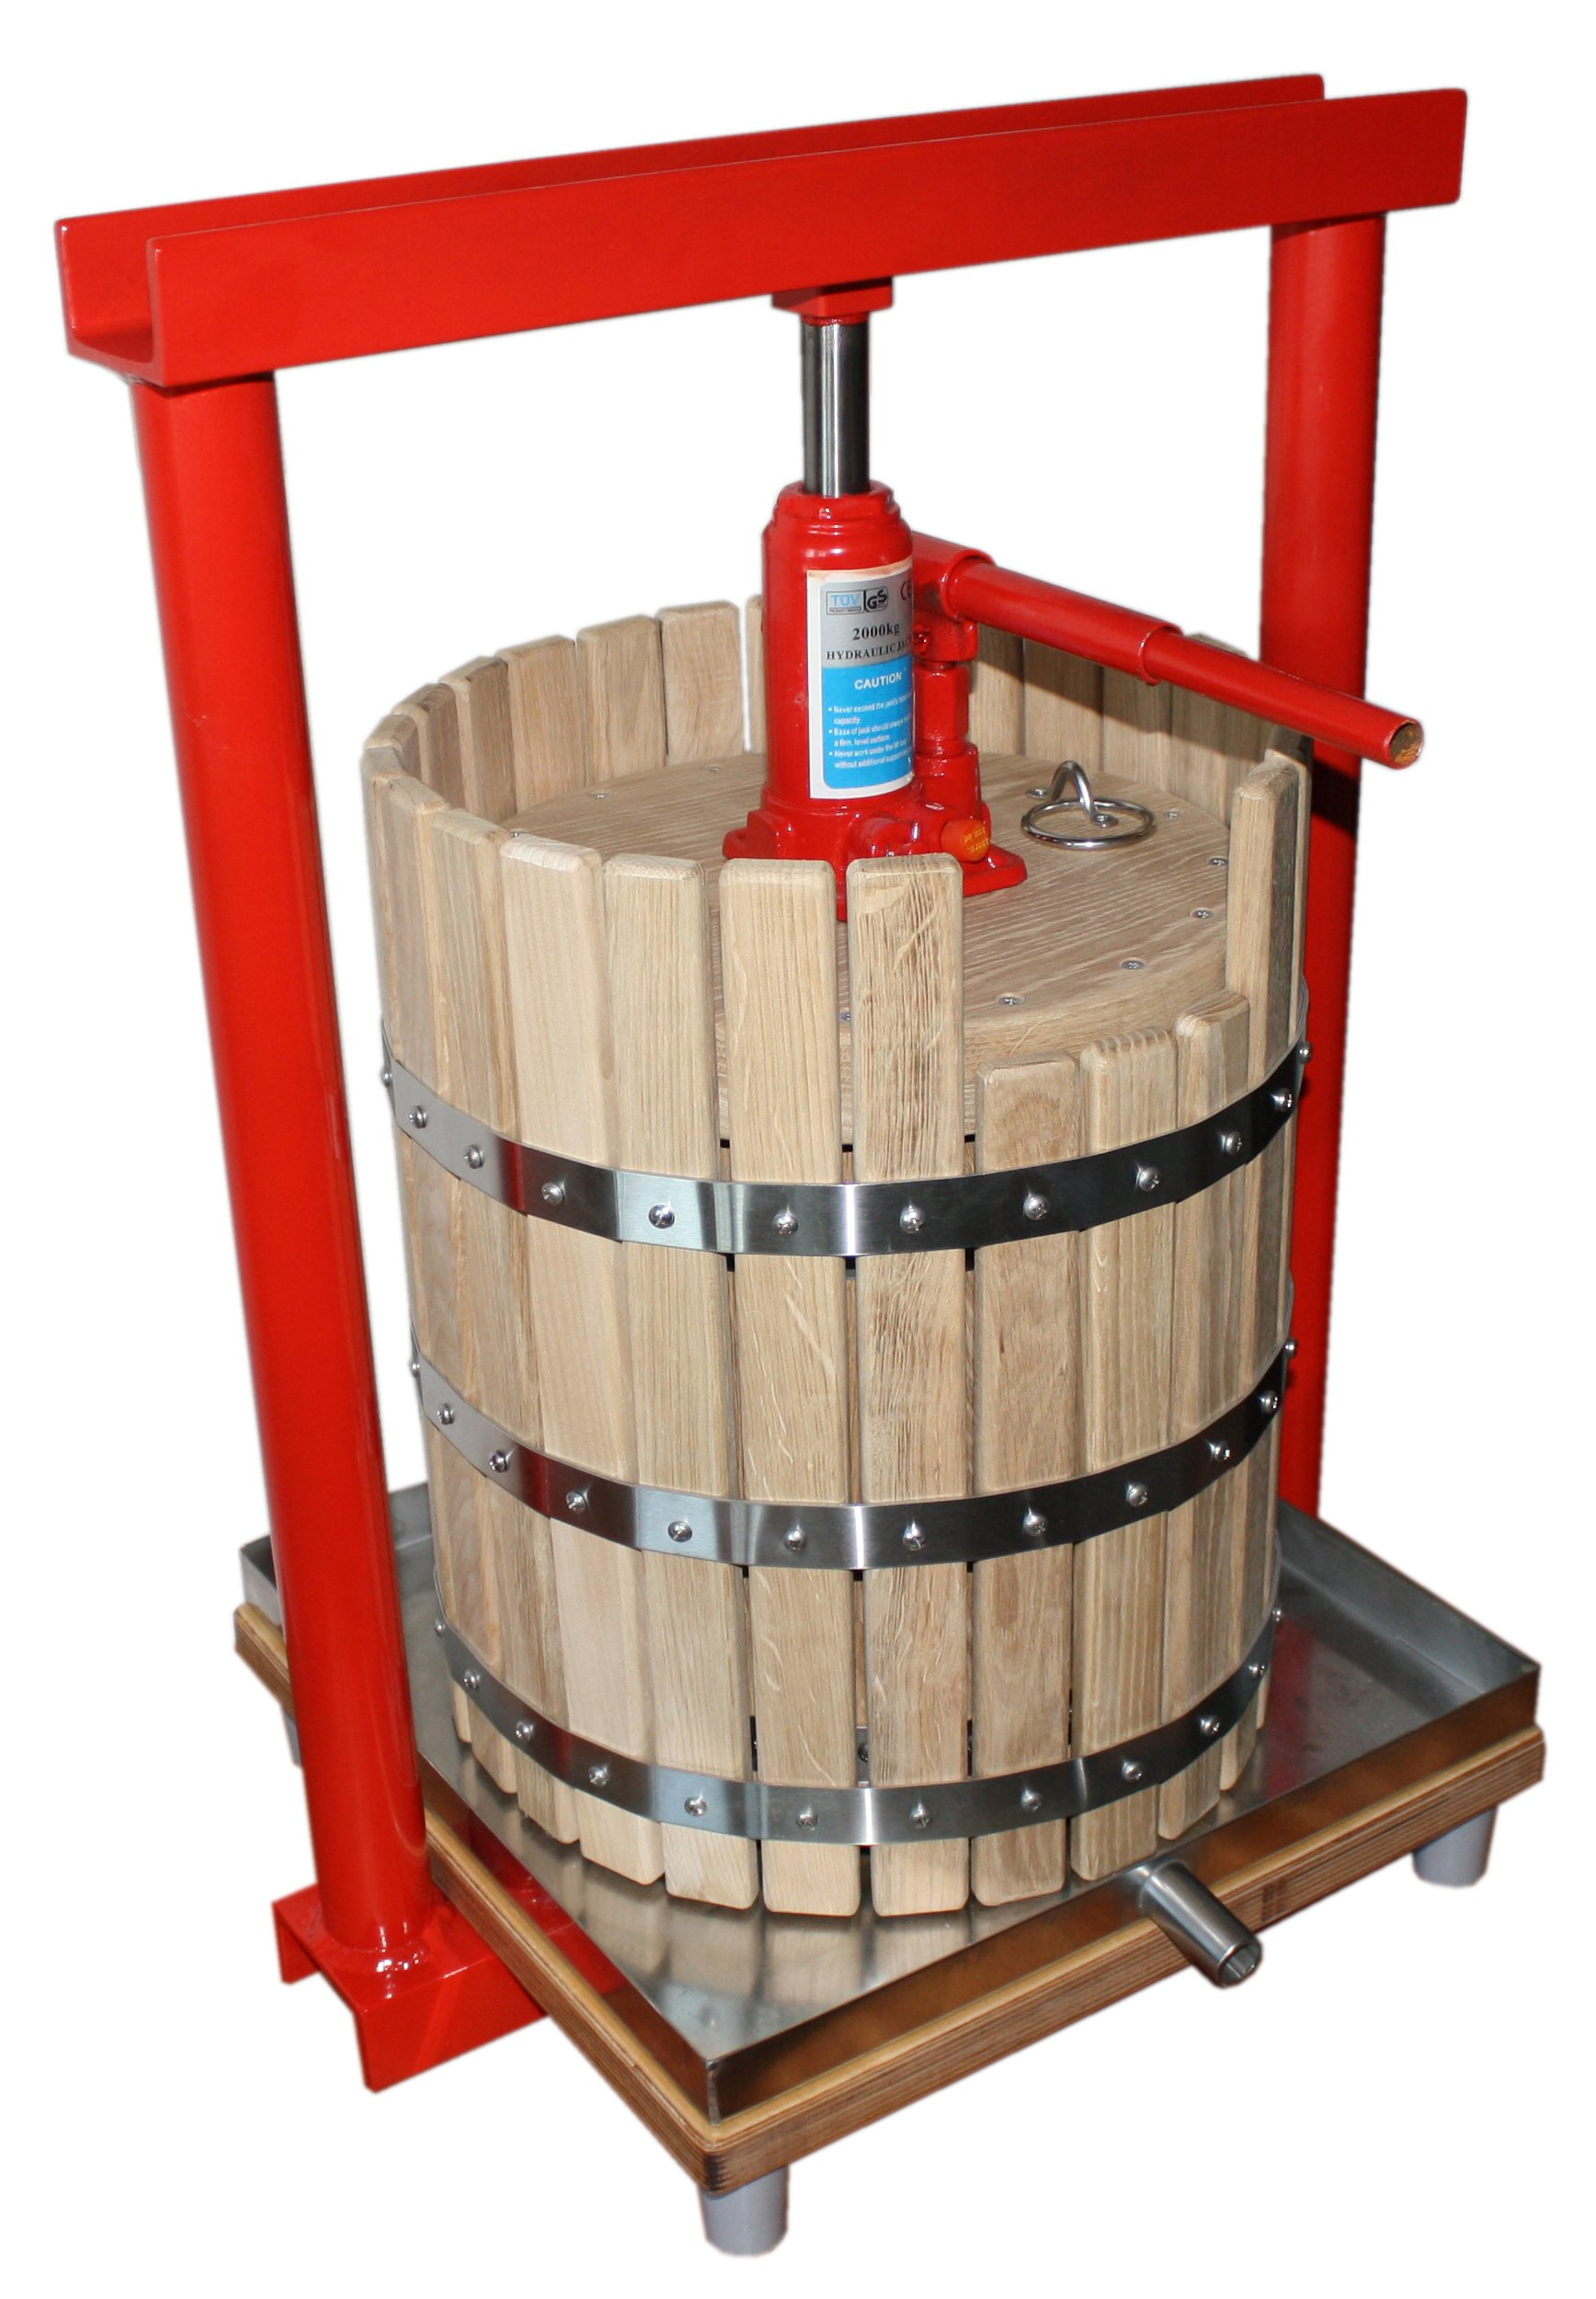 Hydraulic press GBP-30 - juicer for apples, grapes, berries, fruit, wine, cider